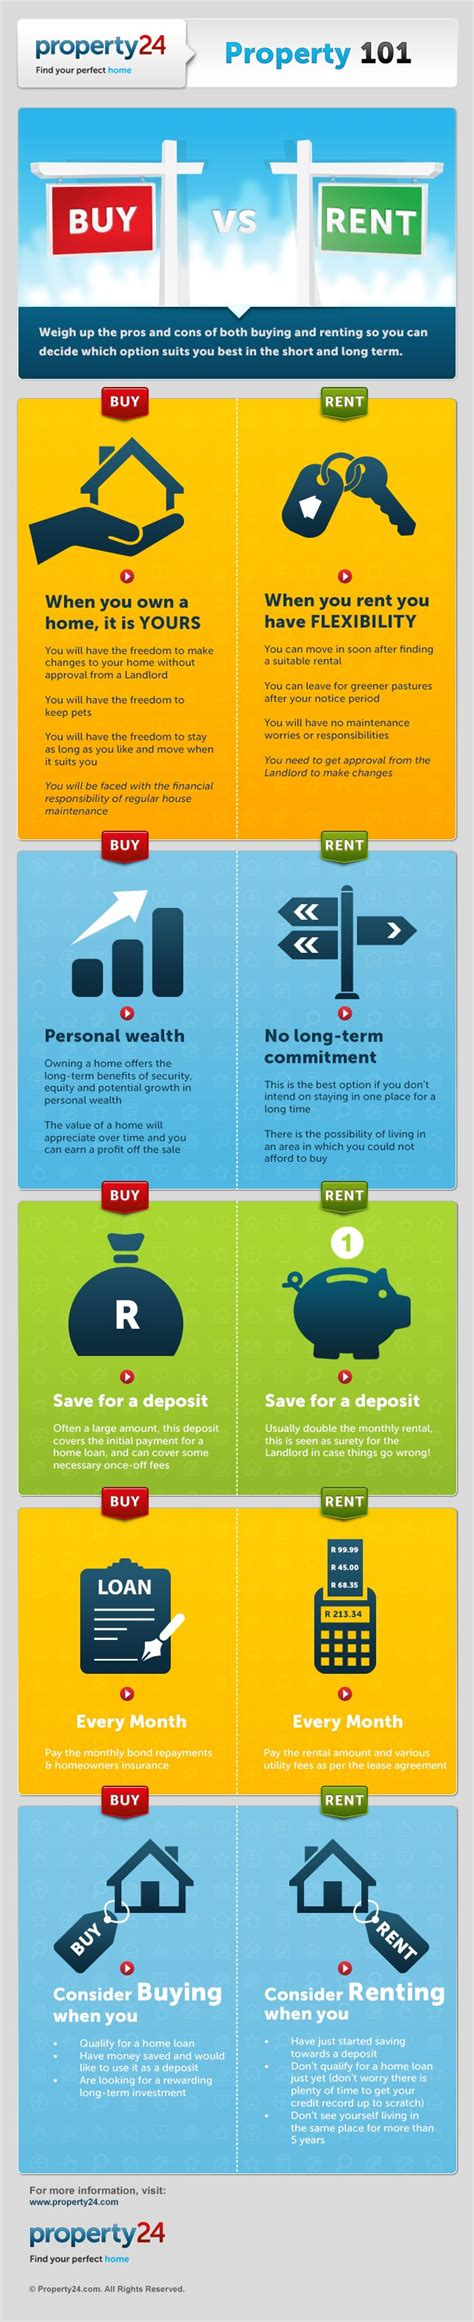 buying a house vs renting and investing infographic rent vs buy a home property 101 rent vs buy guide infographics